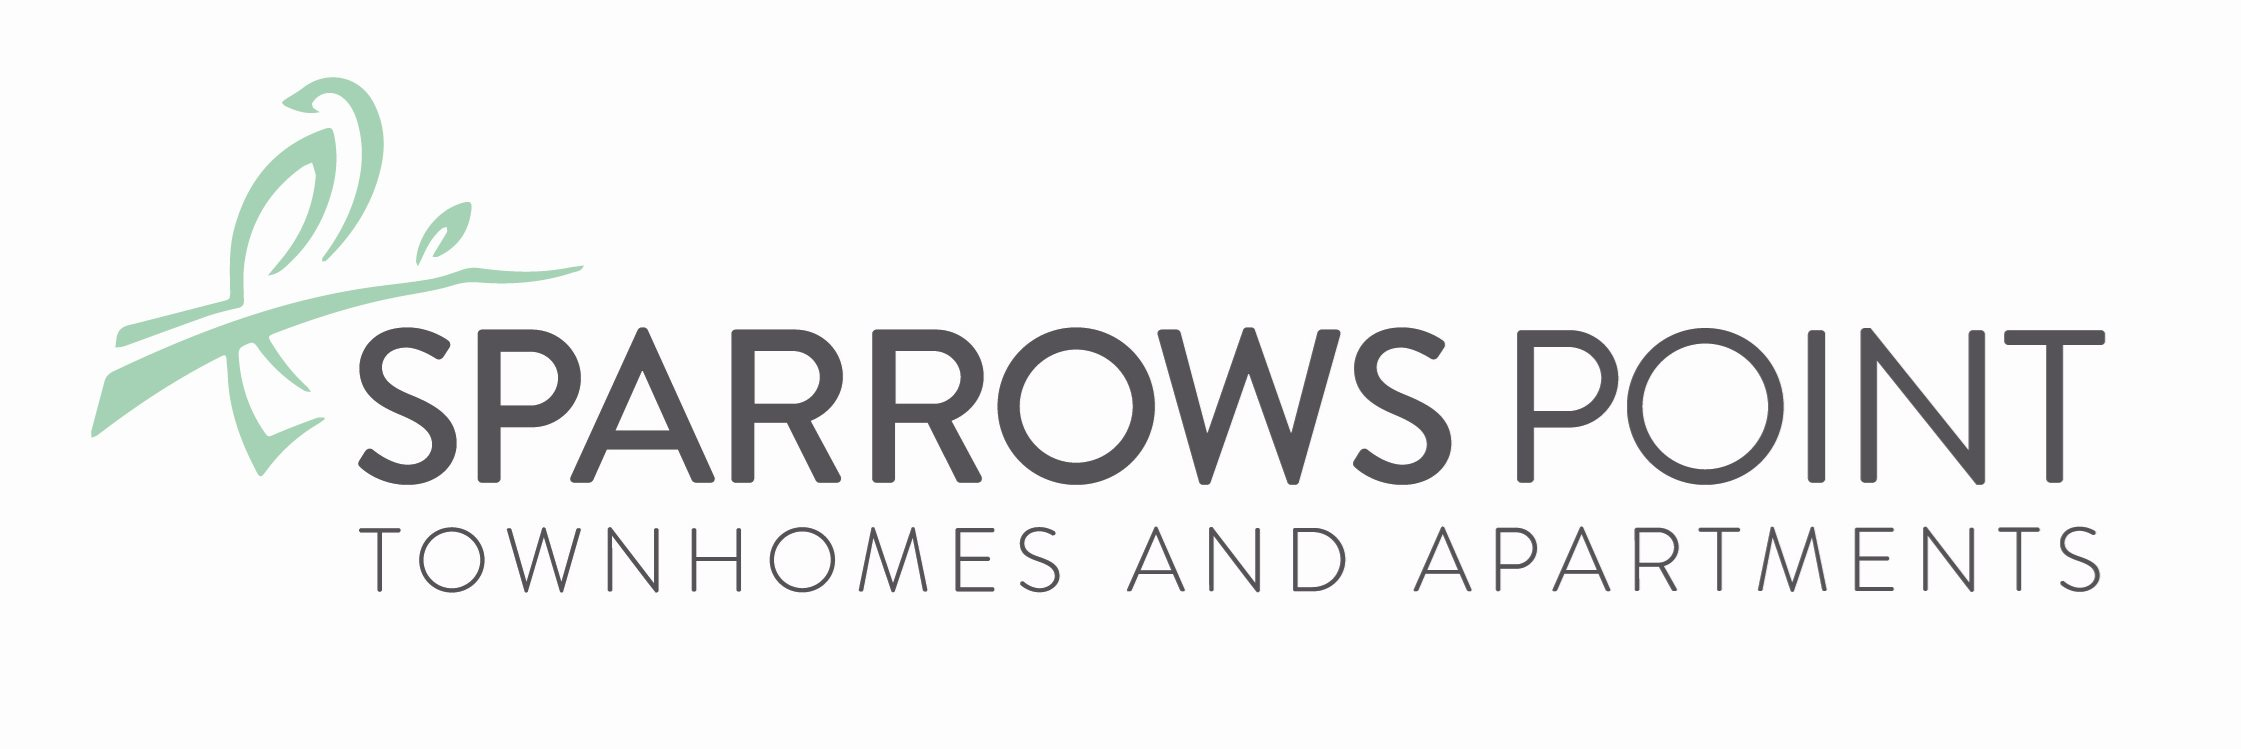 Sparrows Point Townhomes and Apartments